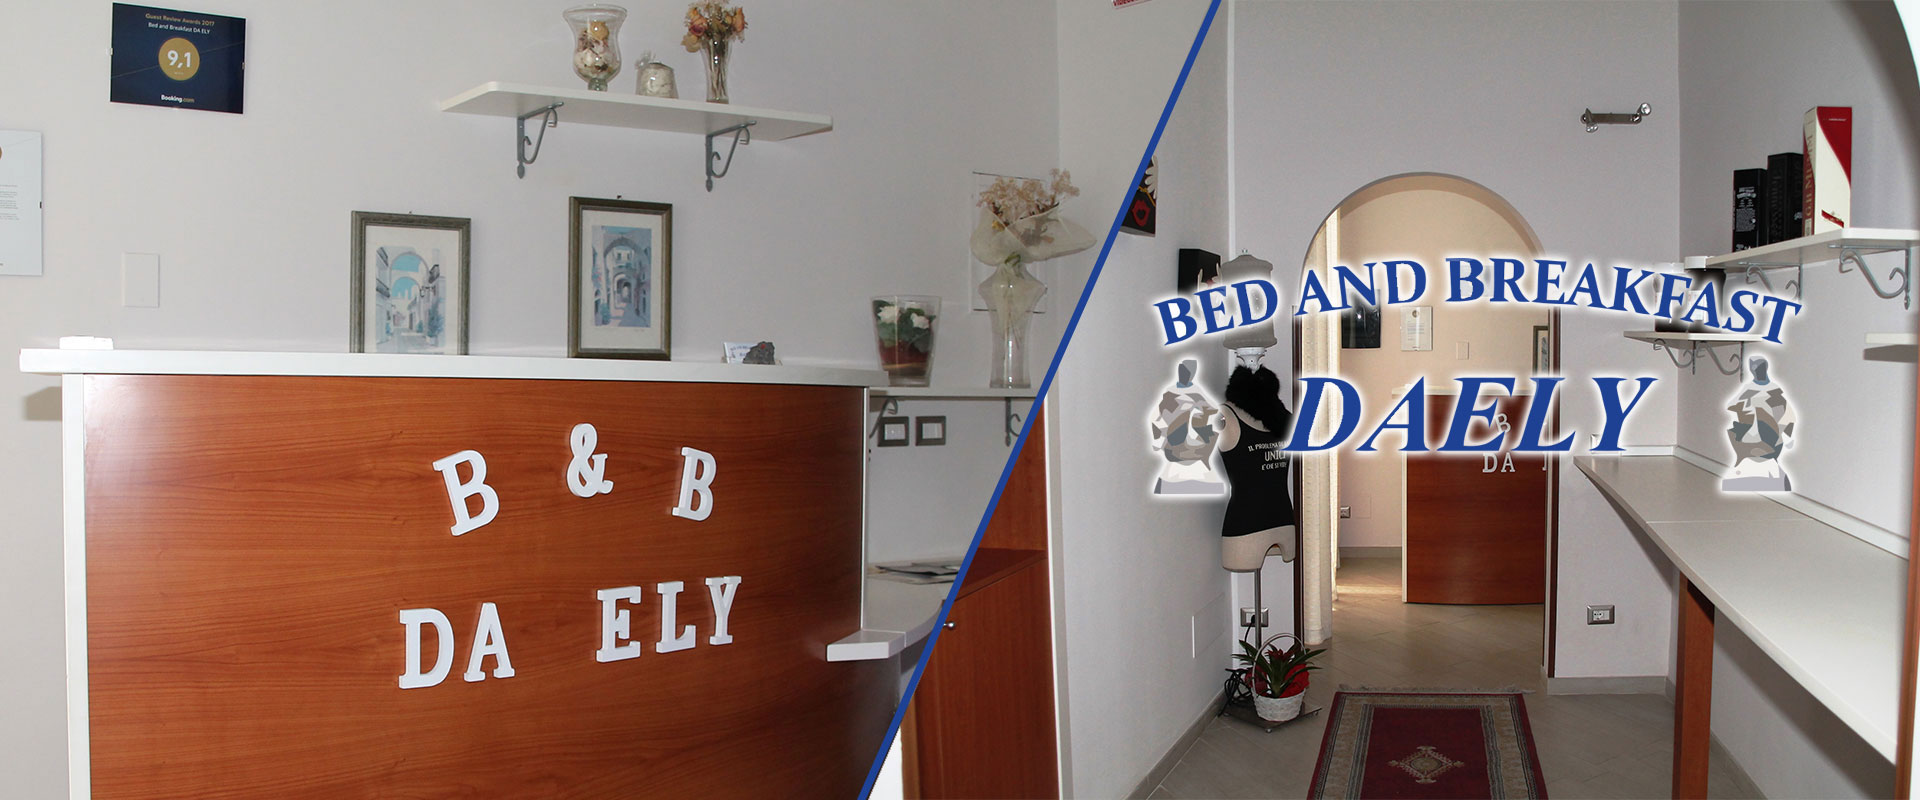 Da Ely - Bed and Breakfast in zona centro a Messina vicino Università e Tribunale